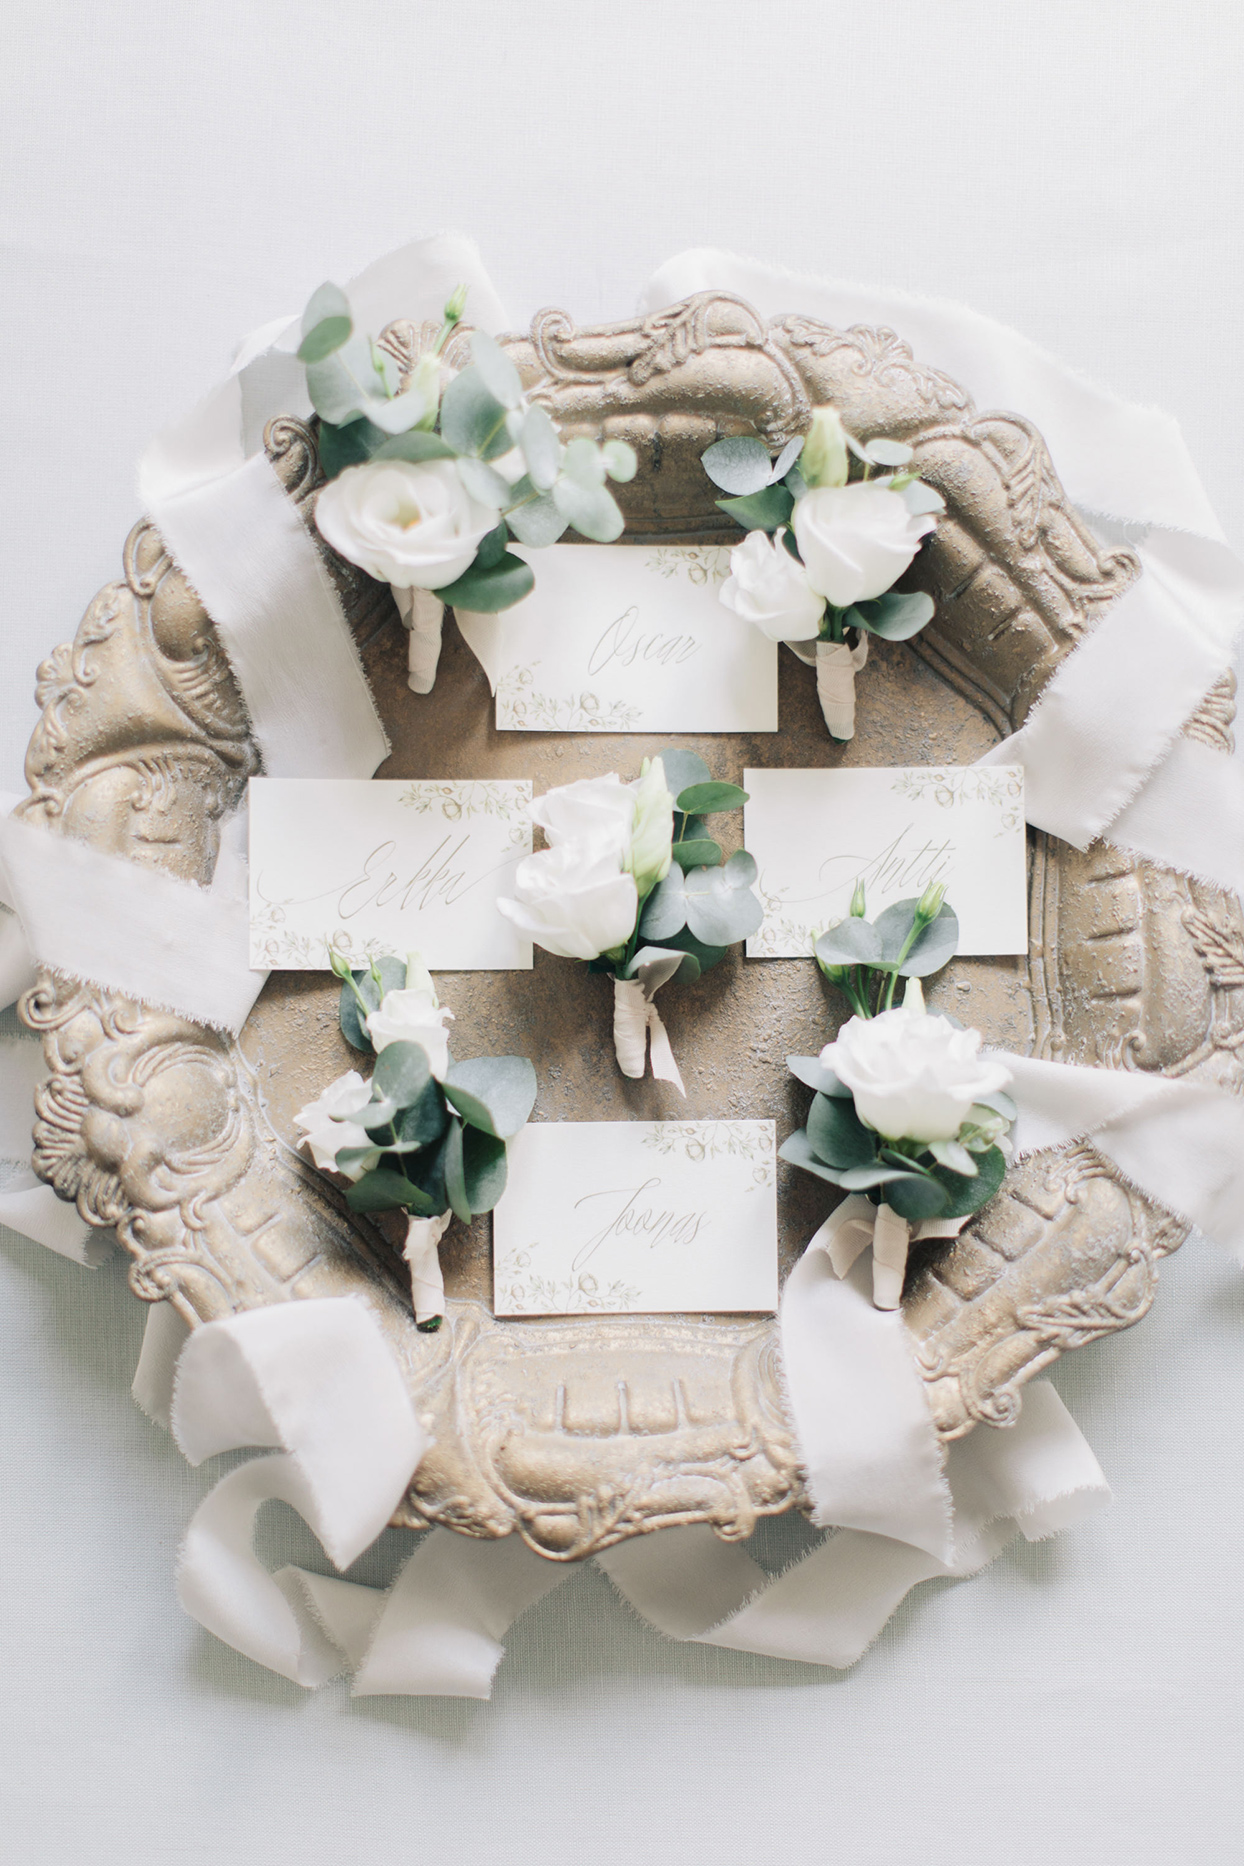 kiira arthur wedding boutonnieres on ornate tray